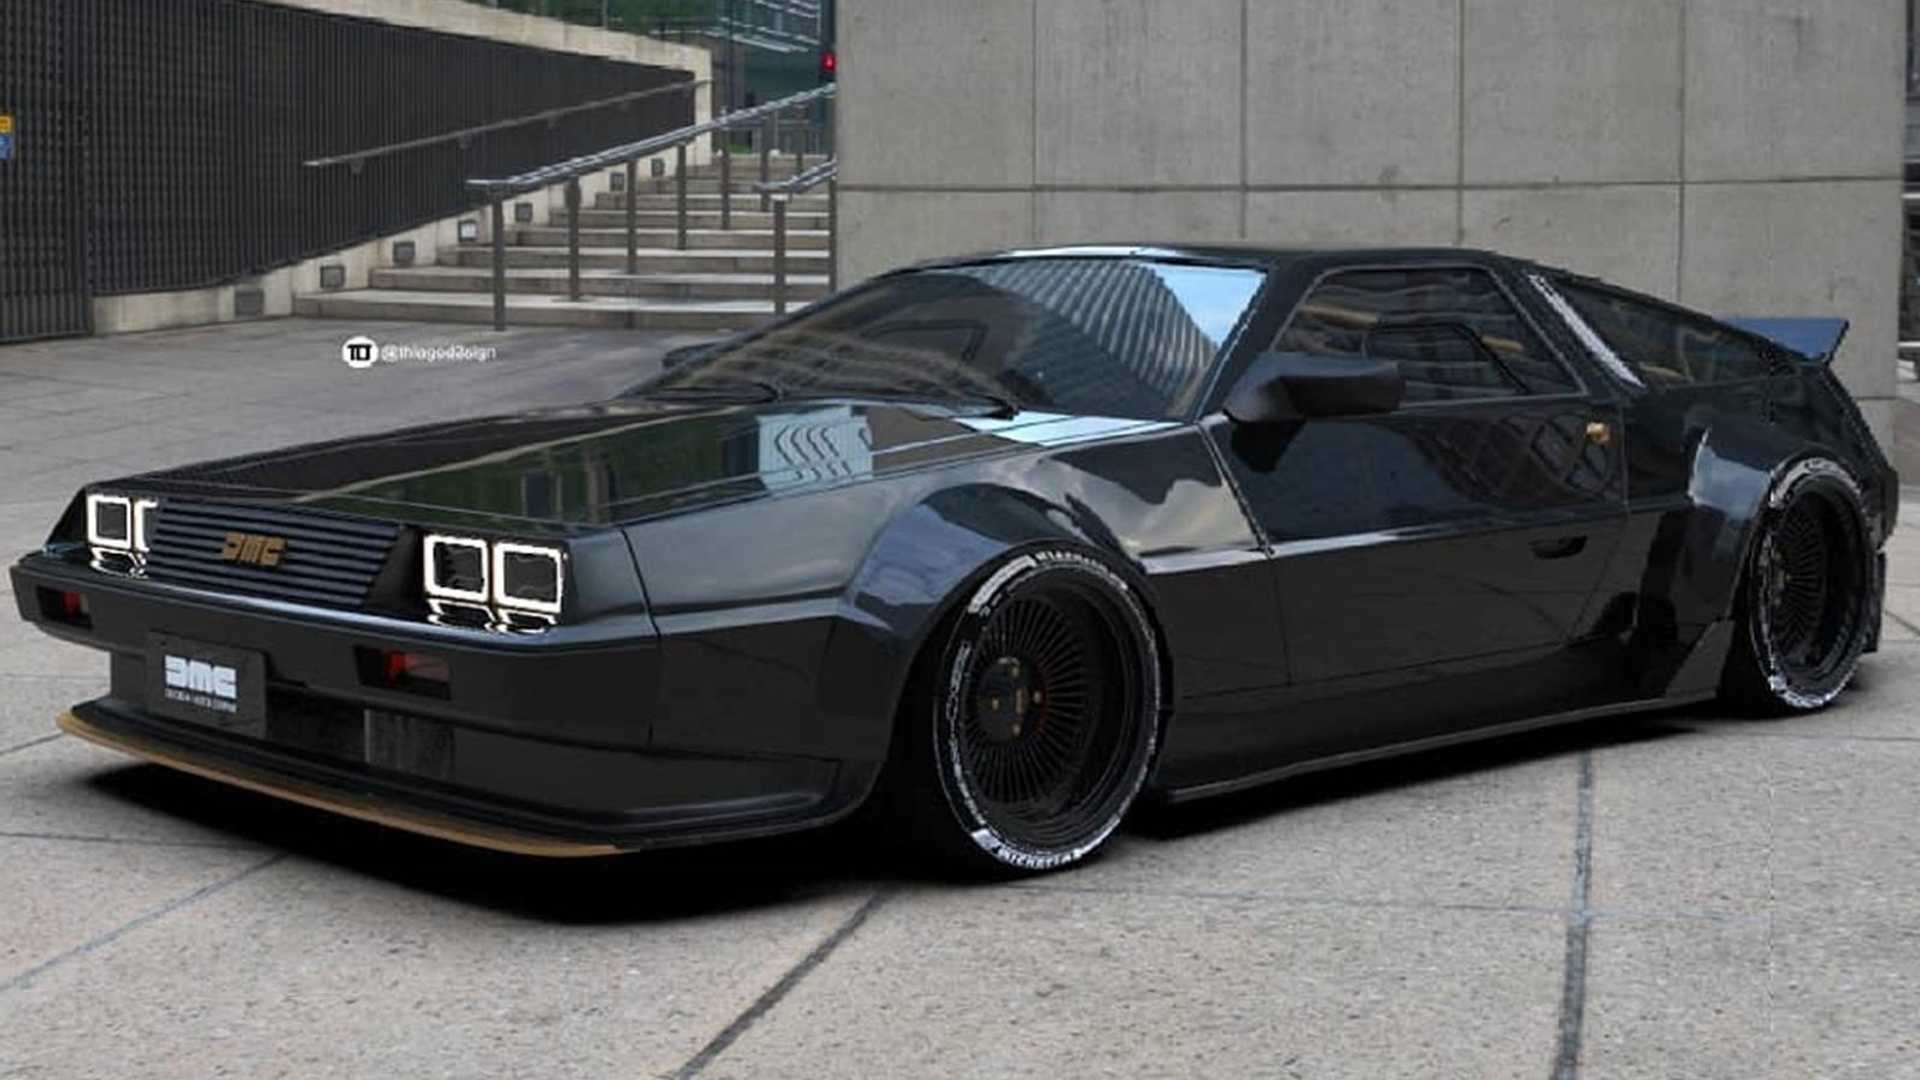 This Insane DeLorean DMC-12 Restomod Should Be A Thing